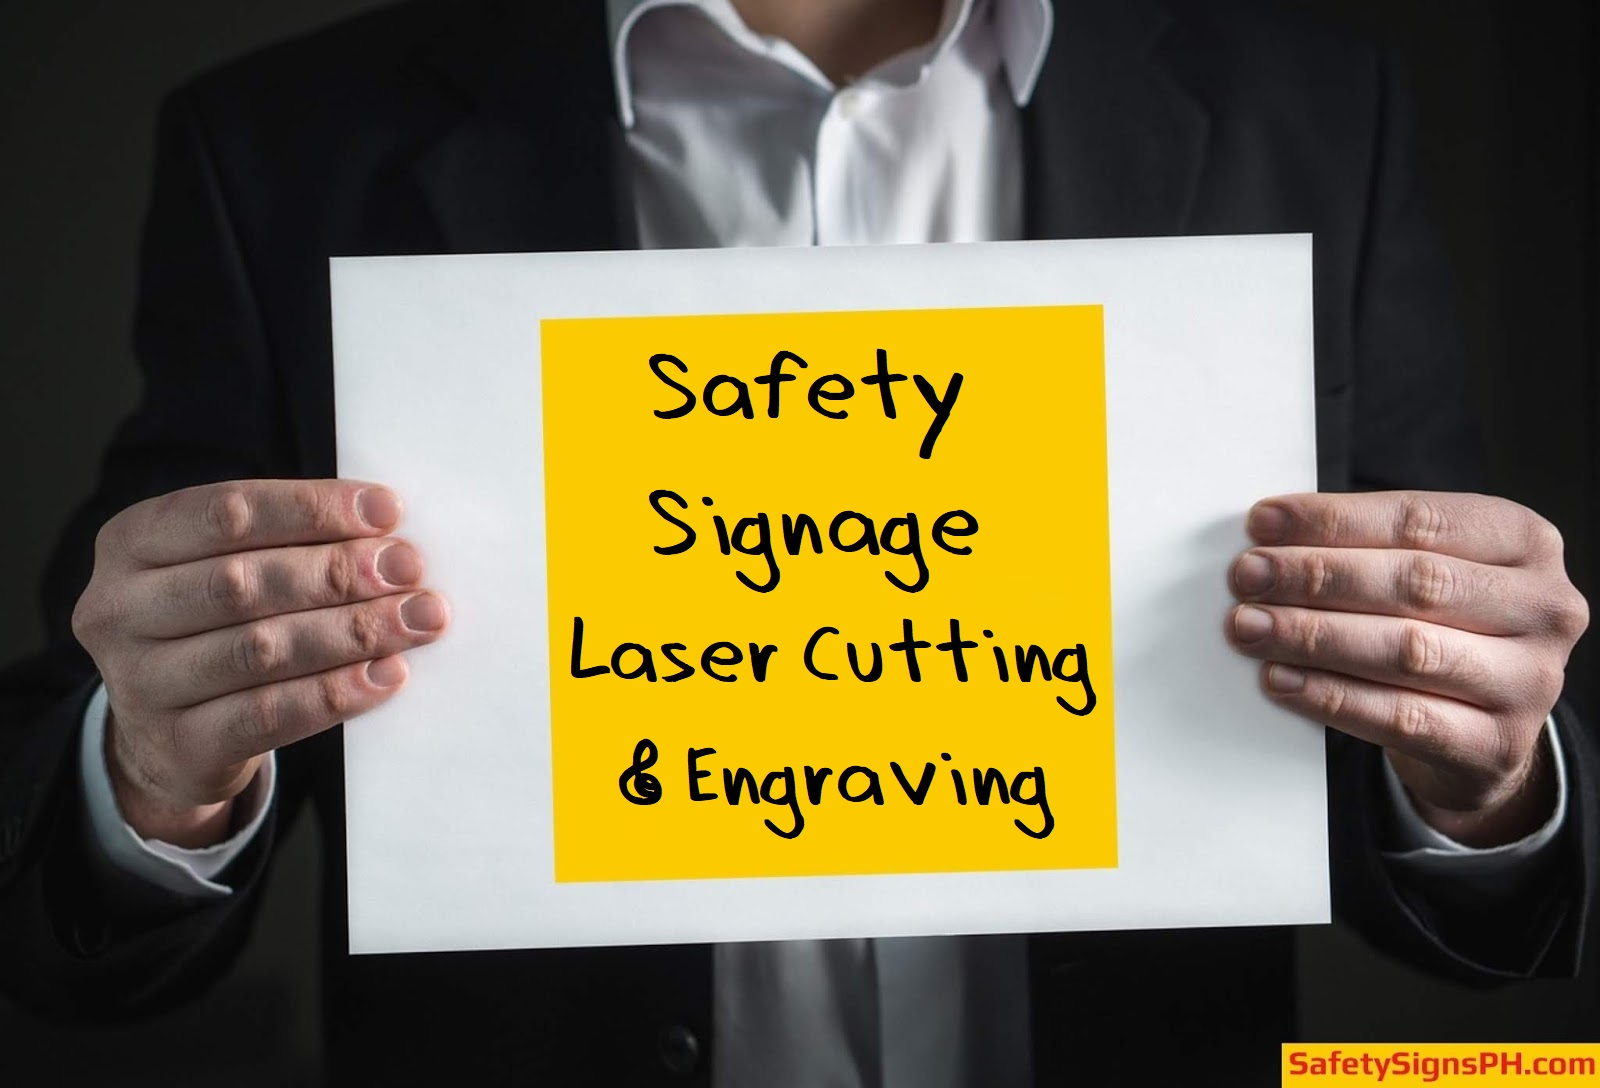 Safety Signage Laser Cutting & Engraving Services Philippines